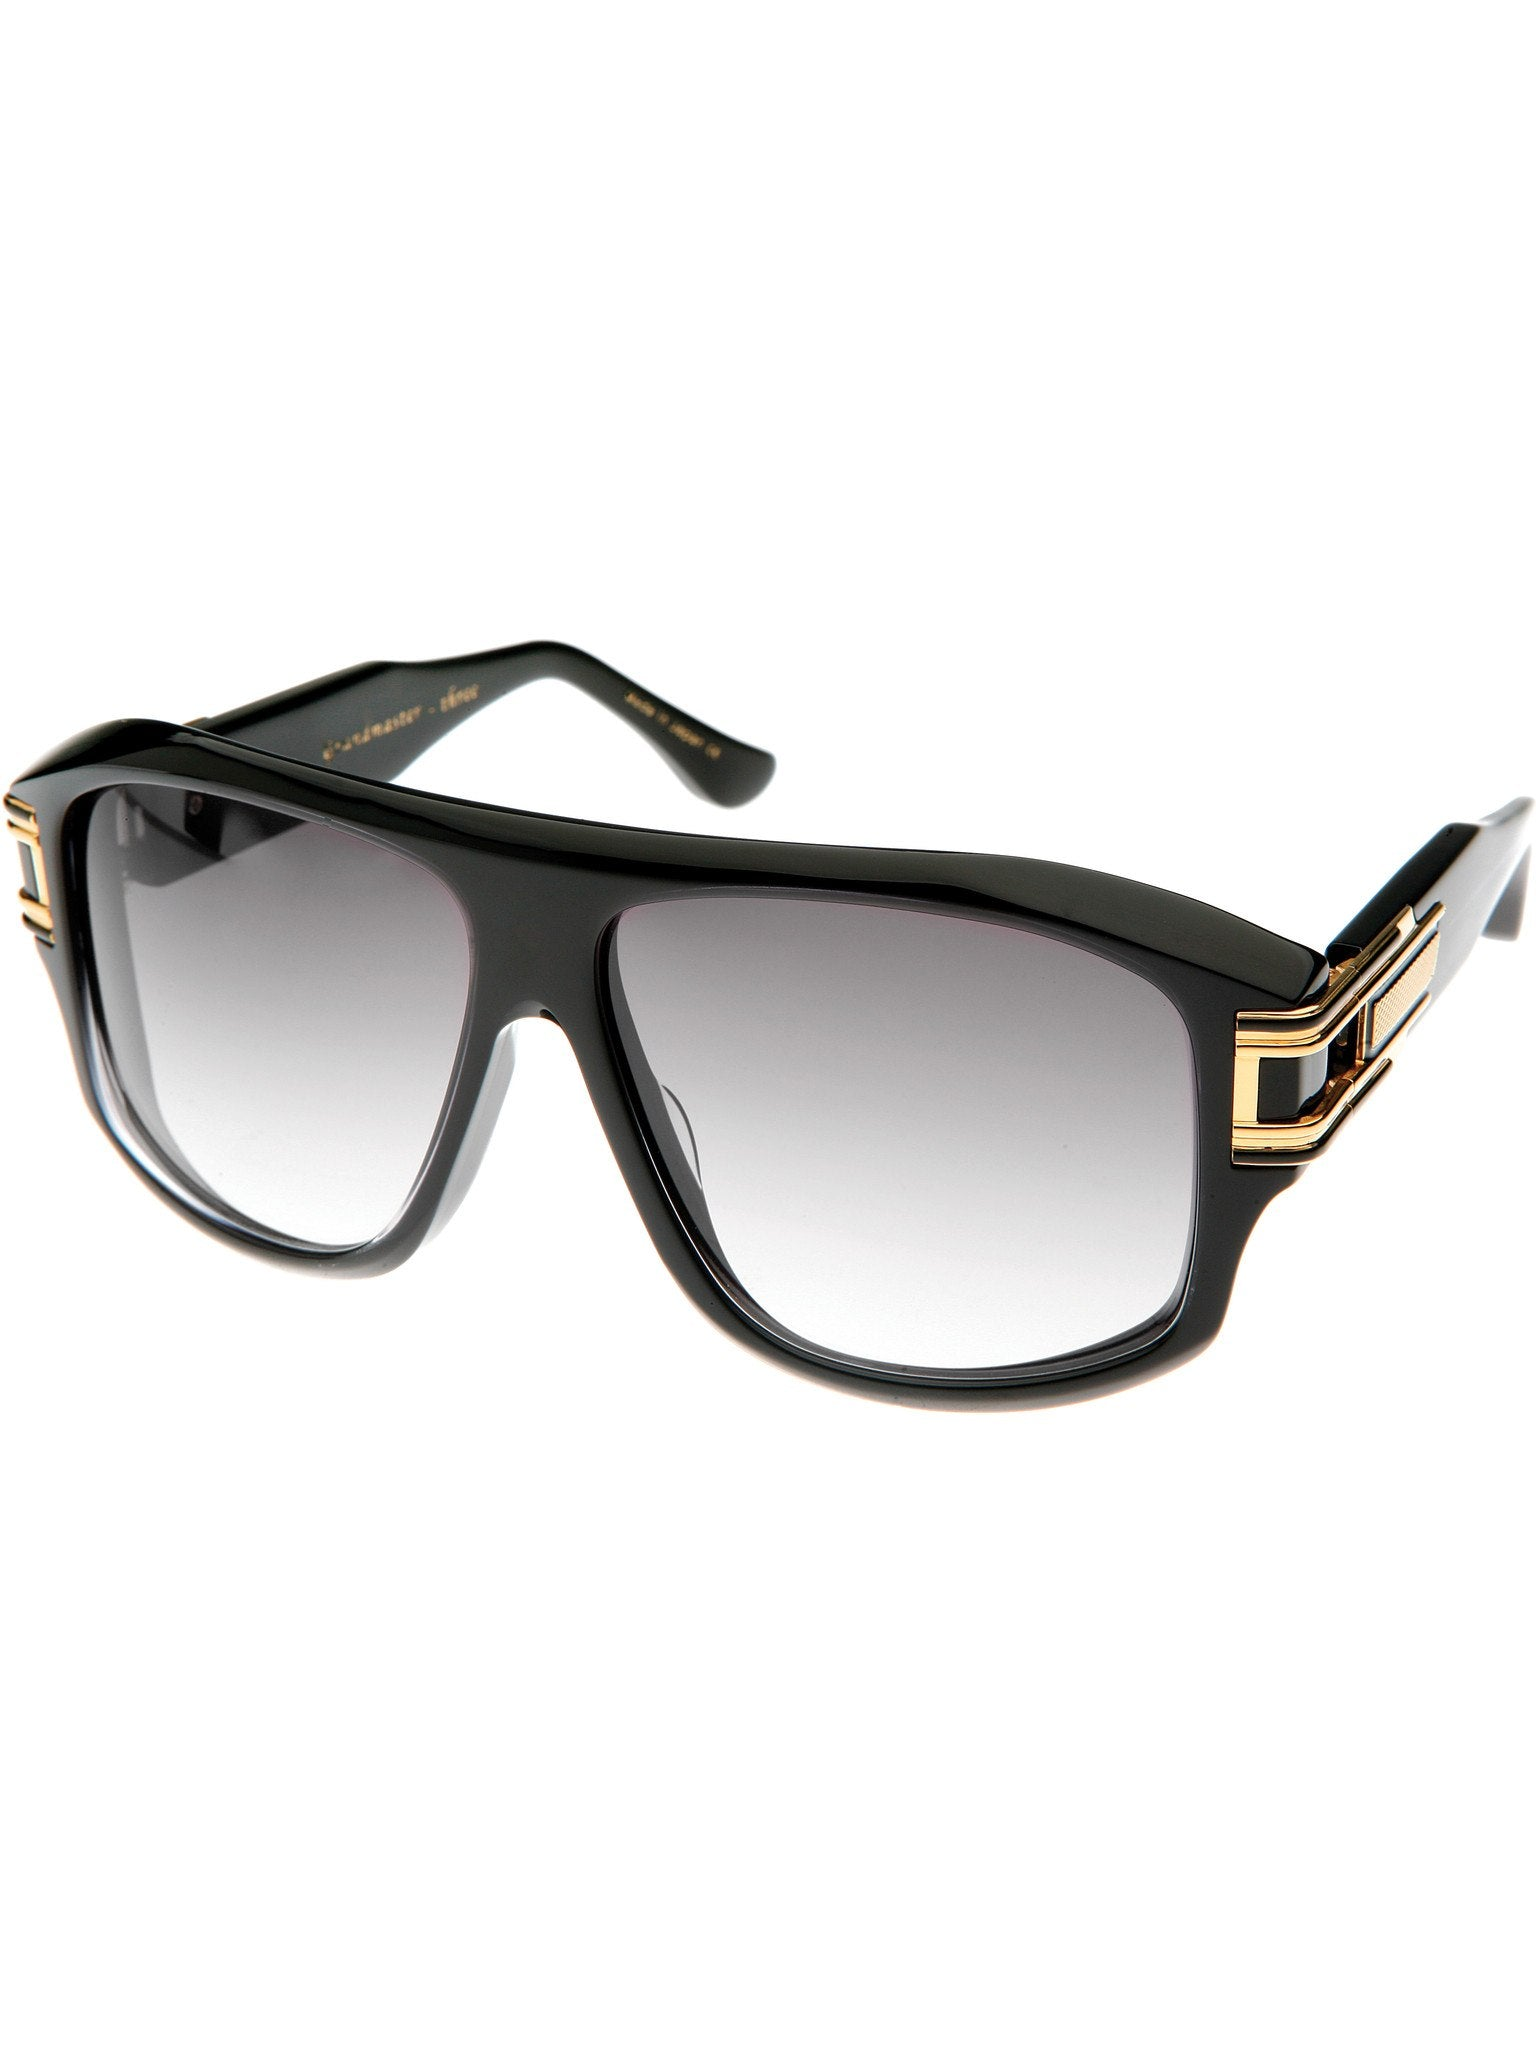 Sunglasses - Dita Grandmaster-Three DRX-2021A Sunglasses